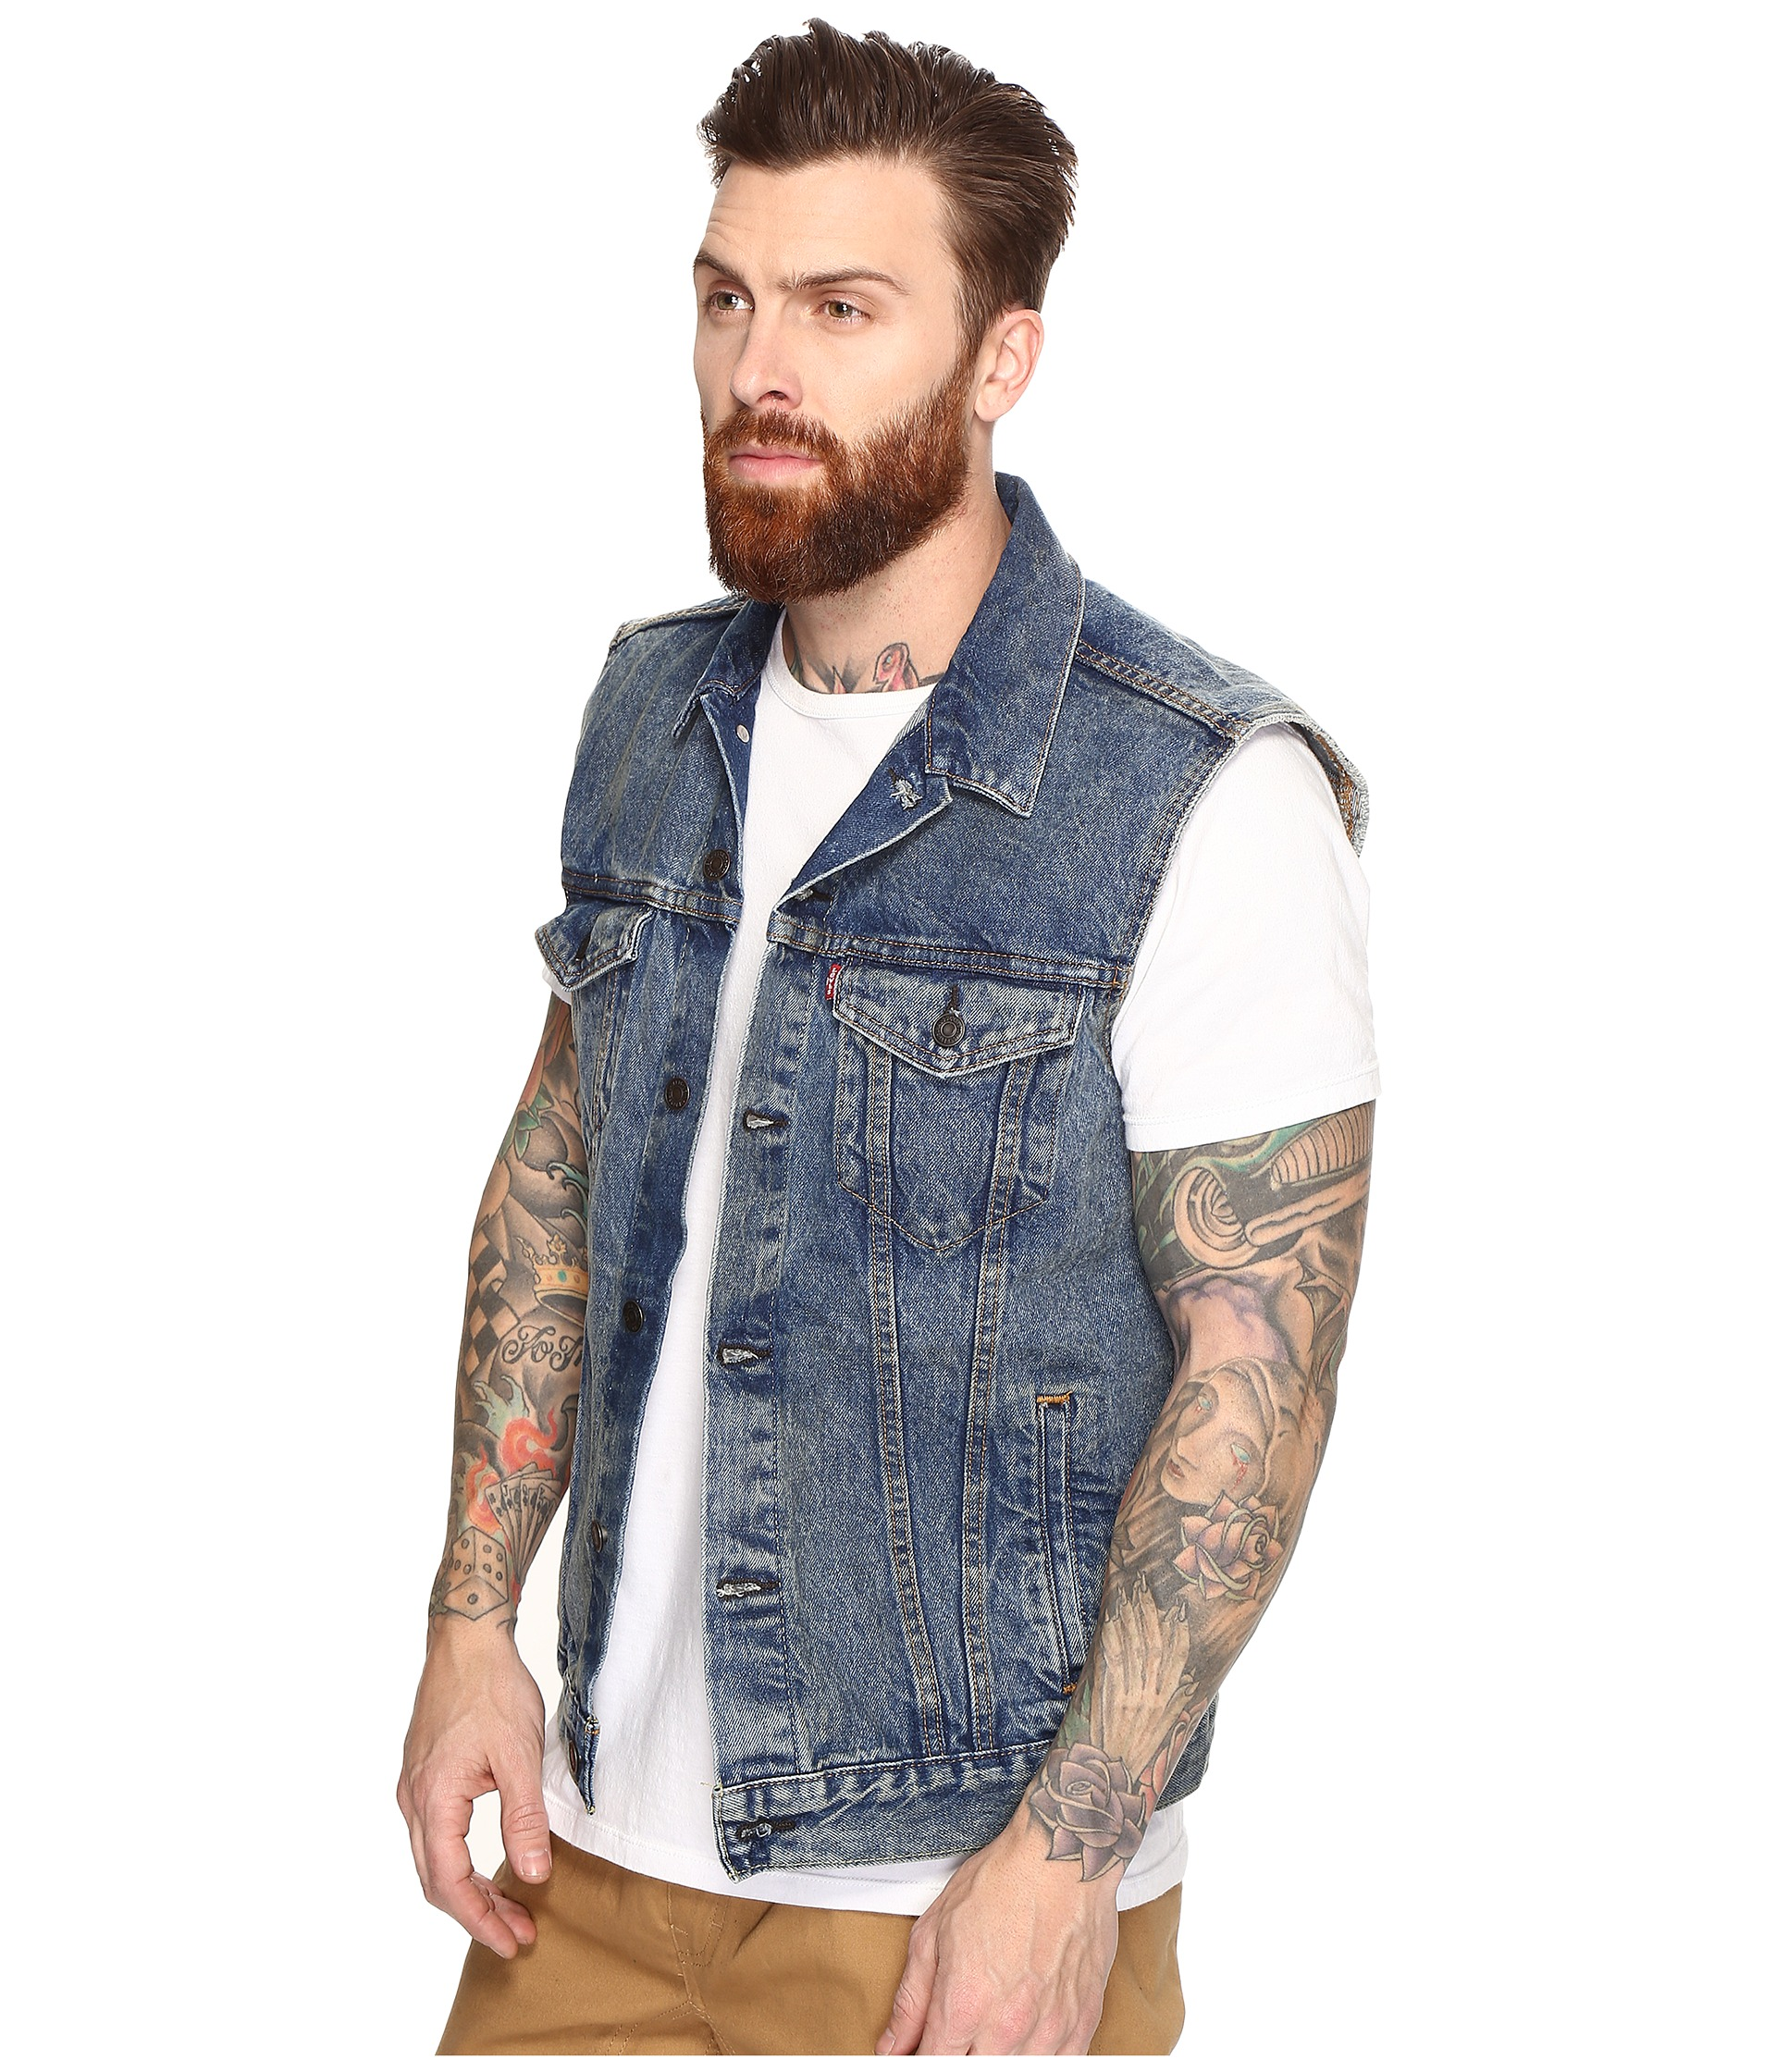 Levi's® men's jackets are a modern twist on classic styles. Find your style and shop for men's casual jean jackets, vests, truckers, and more outerwear at Levi's®. Skip to content Skip to navigation. Track Order; Levi's® WellThread™ x Outerknown Lined Trucker Jacket. $